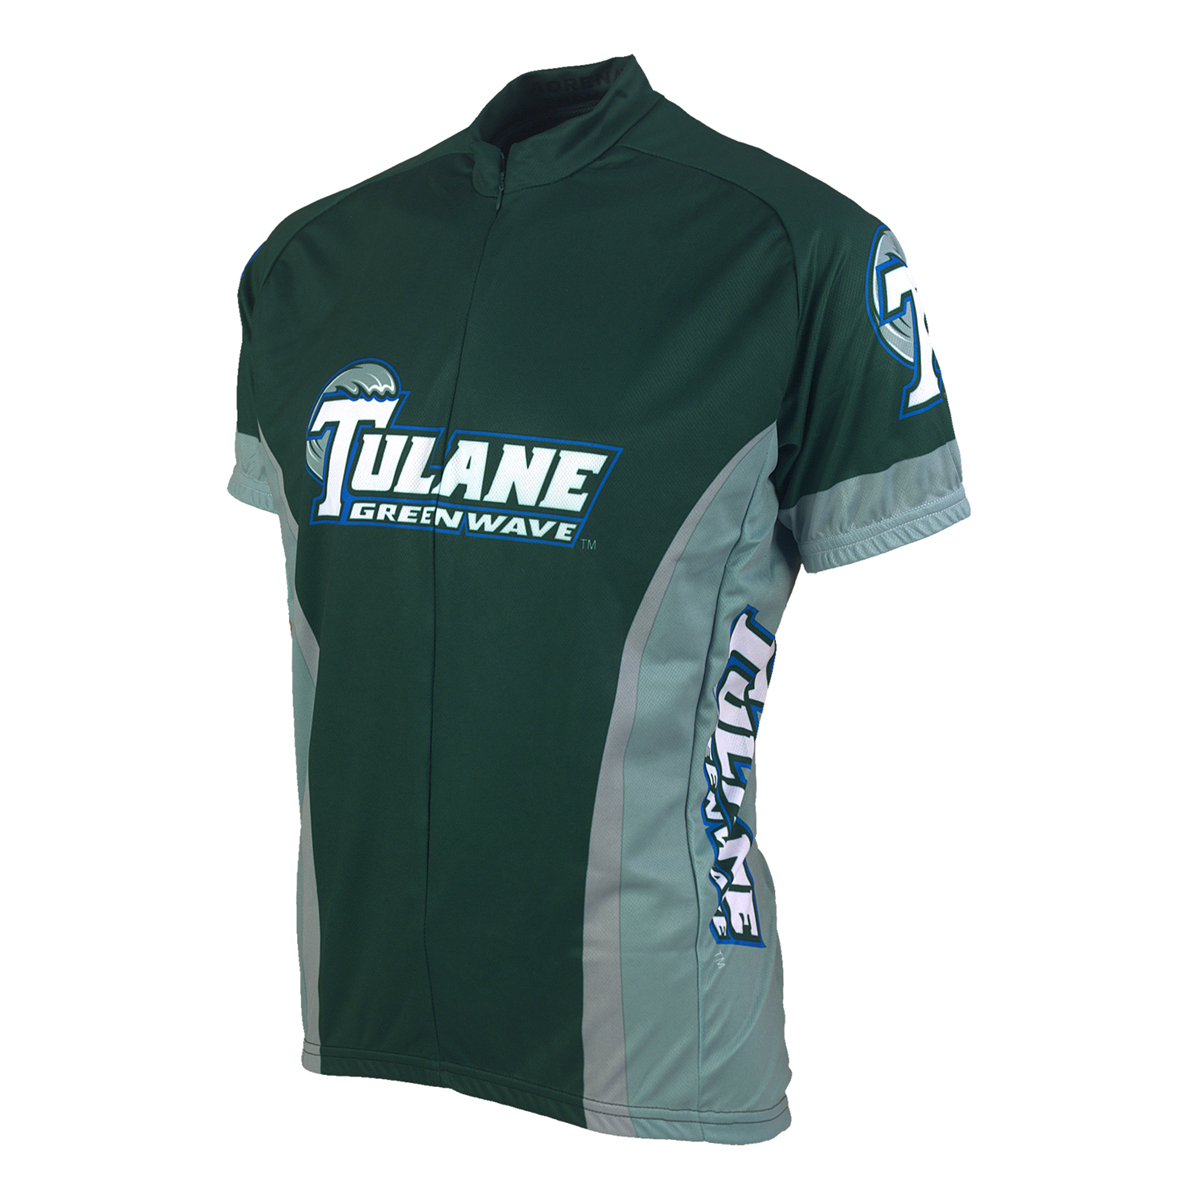 Adrenaline Promotions Tulane University Pelican Cycling Jersey